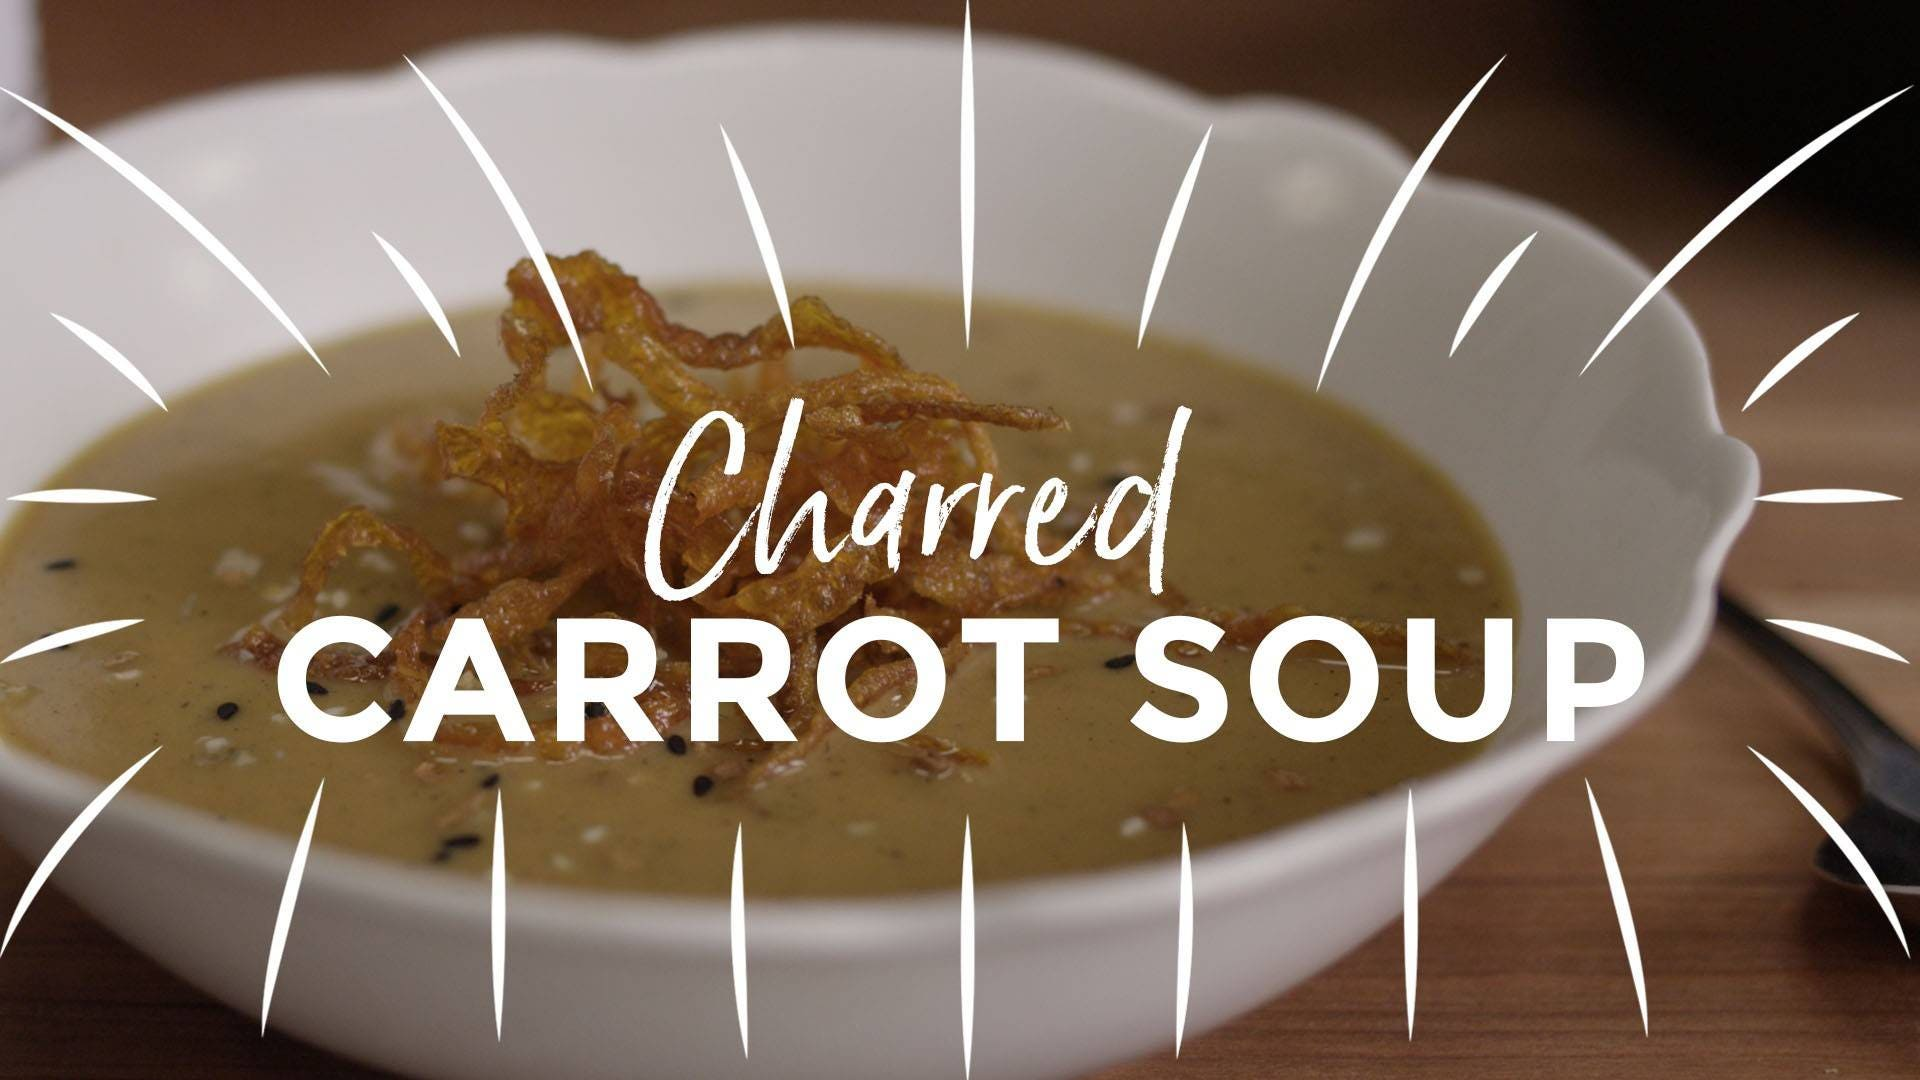 Charred Carrot Soup Recipe